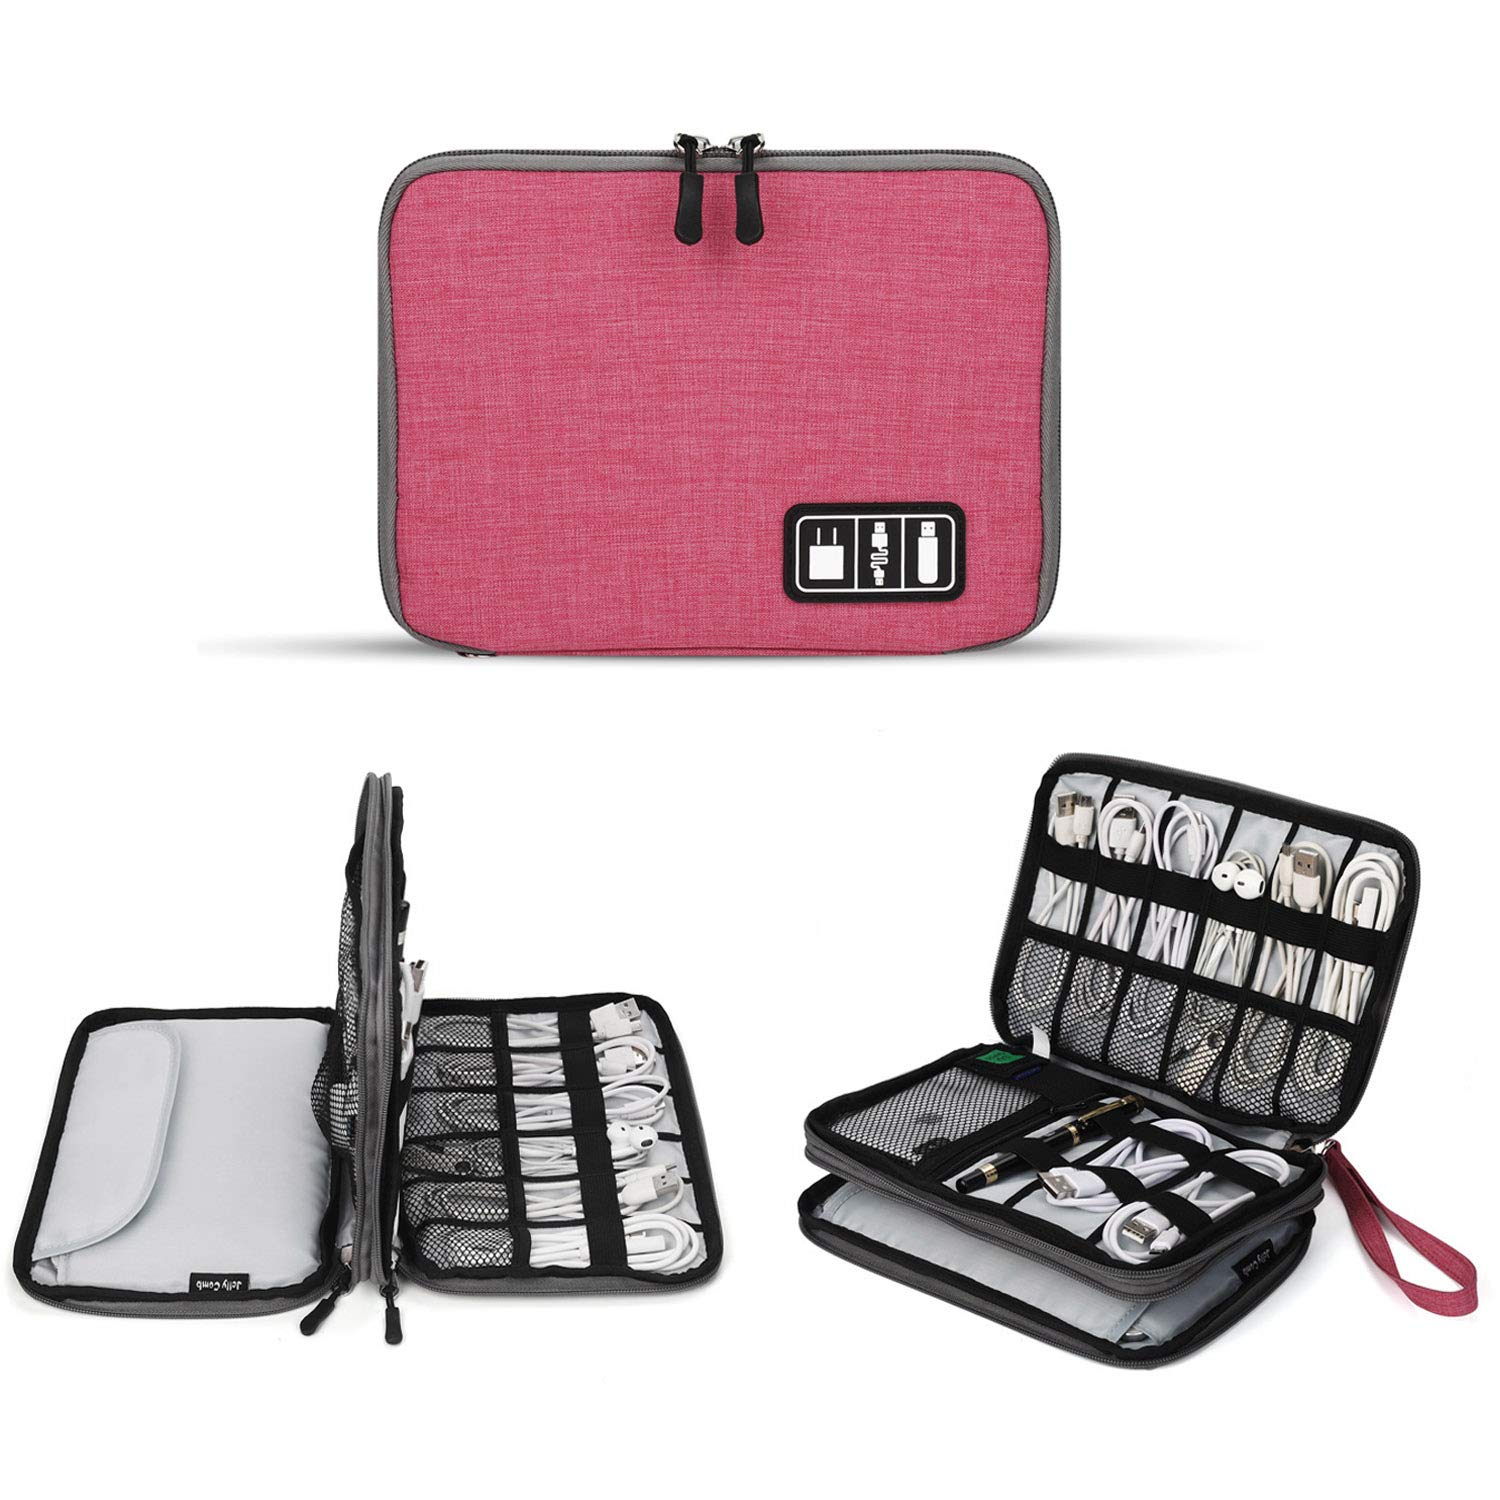 Electronics Organizer, Jelly Comb Electronic Accessories Cable Organizer Bag Waterproof Travel Cable Storage Bag for Charging Cable, Cellphone, Mini Tablet and More (Hot Pink)